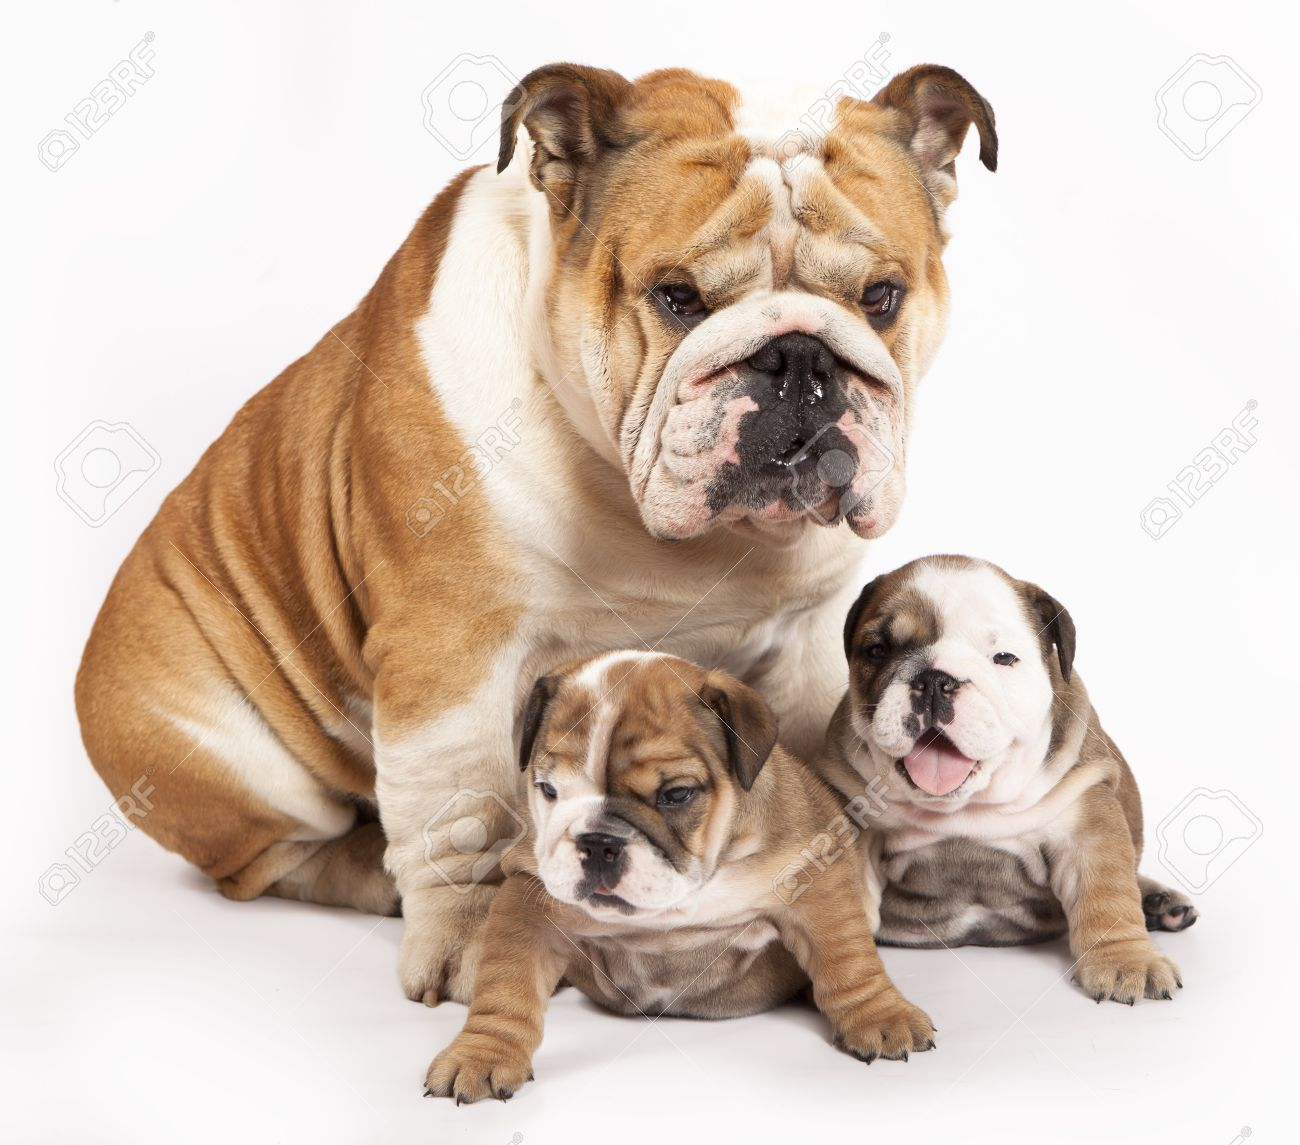 Bored English Bulldog English Bulldog Puppy And